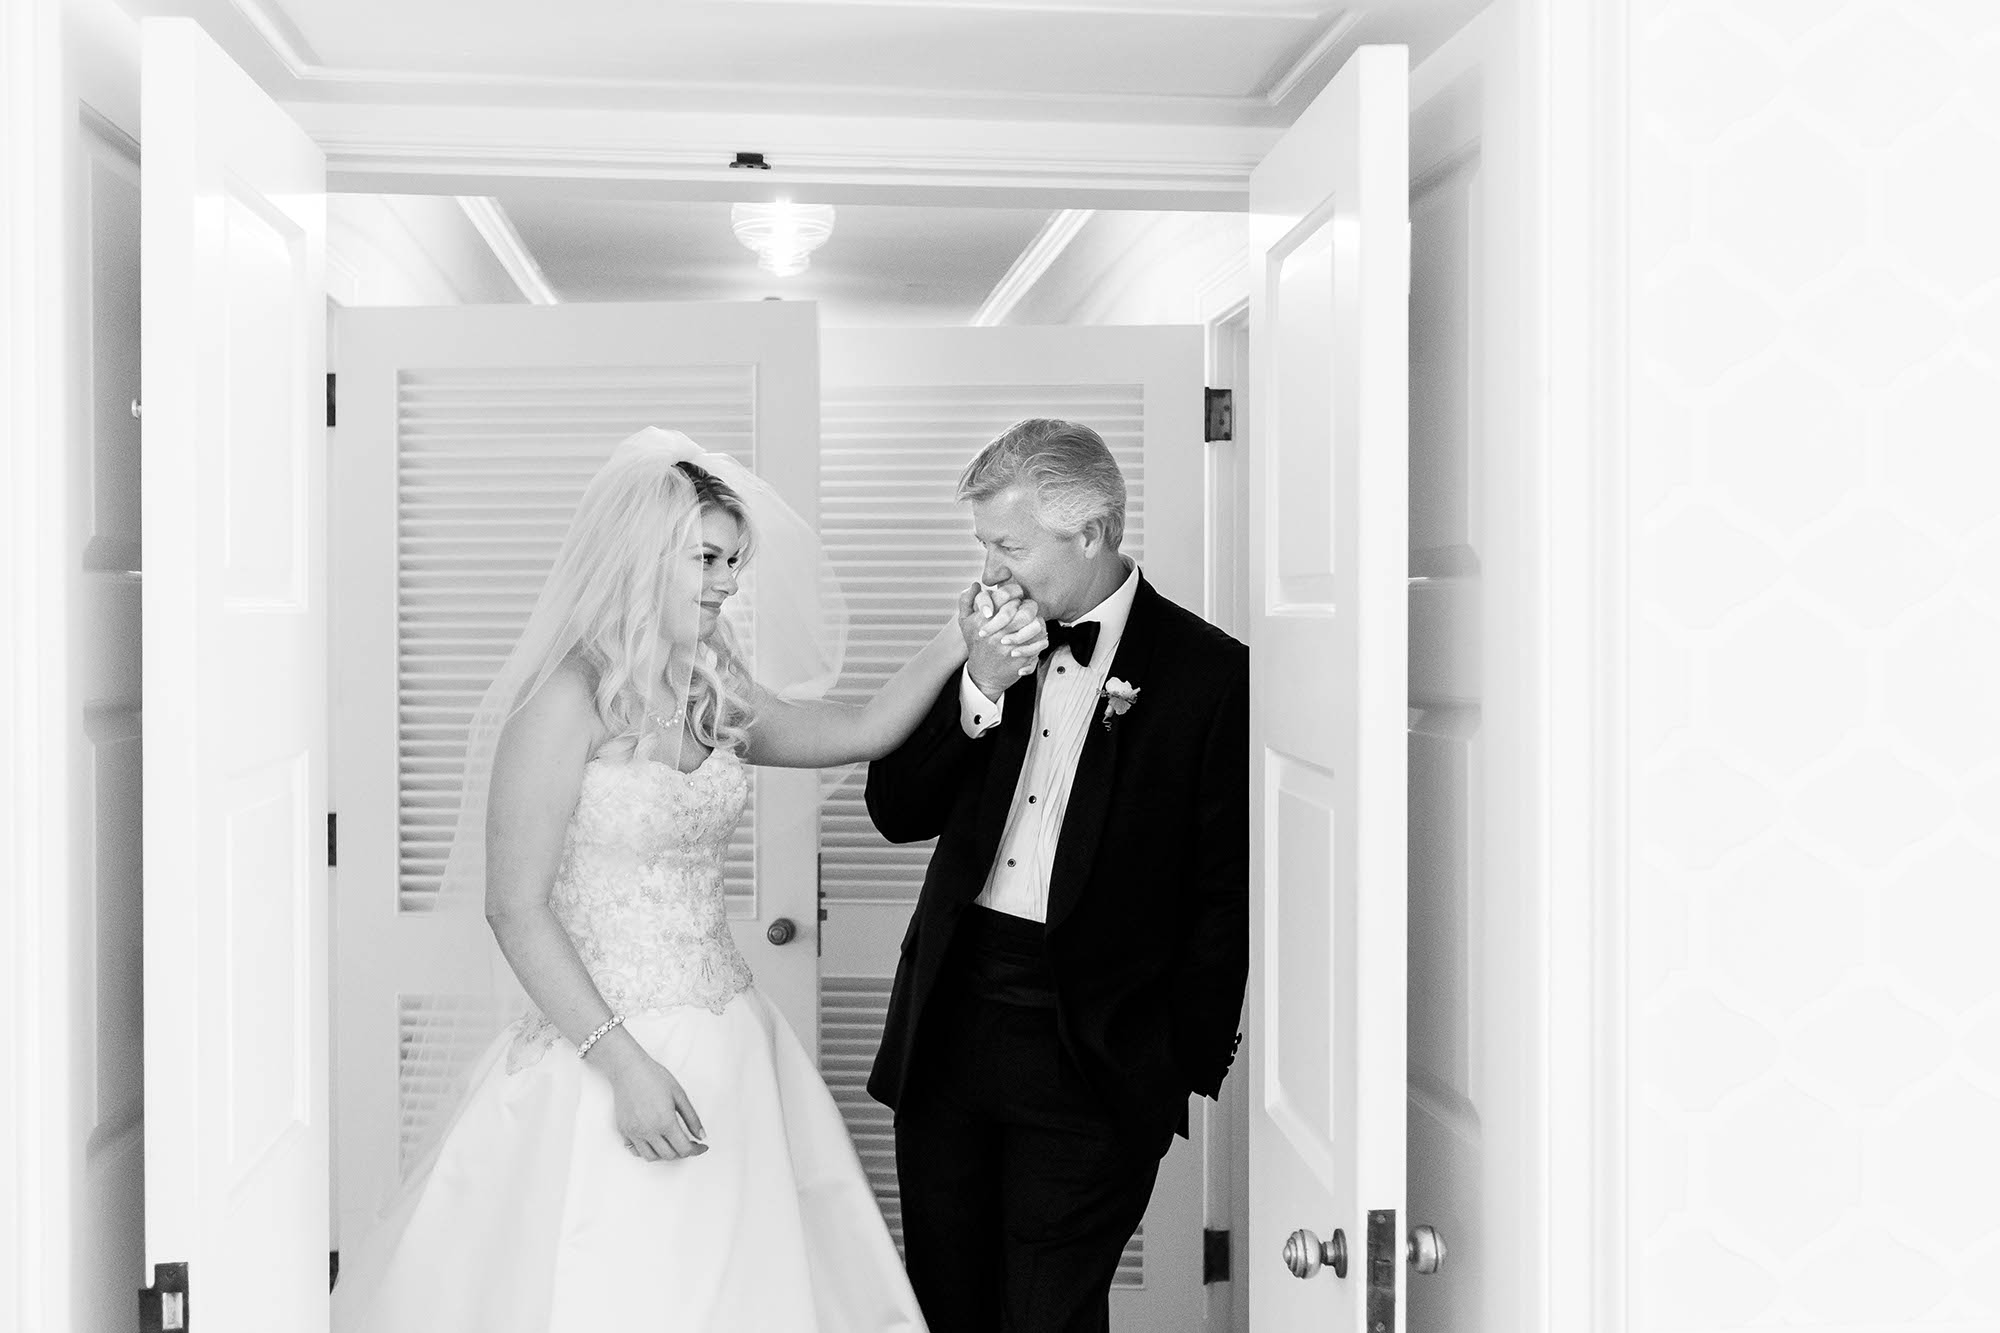 Father of the bride kisses his daughter on the hand moments before she walks down the aisle during their Country Club wedding in Pepper Pike, Ohio.